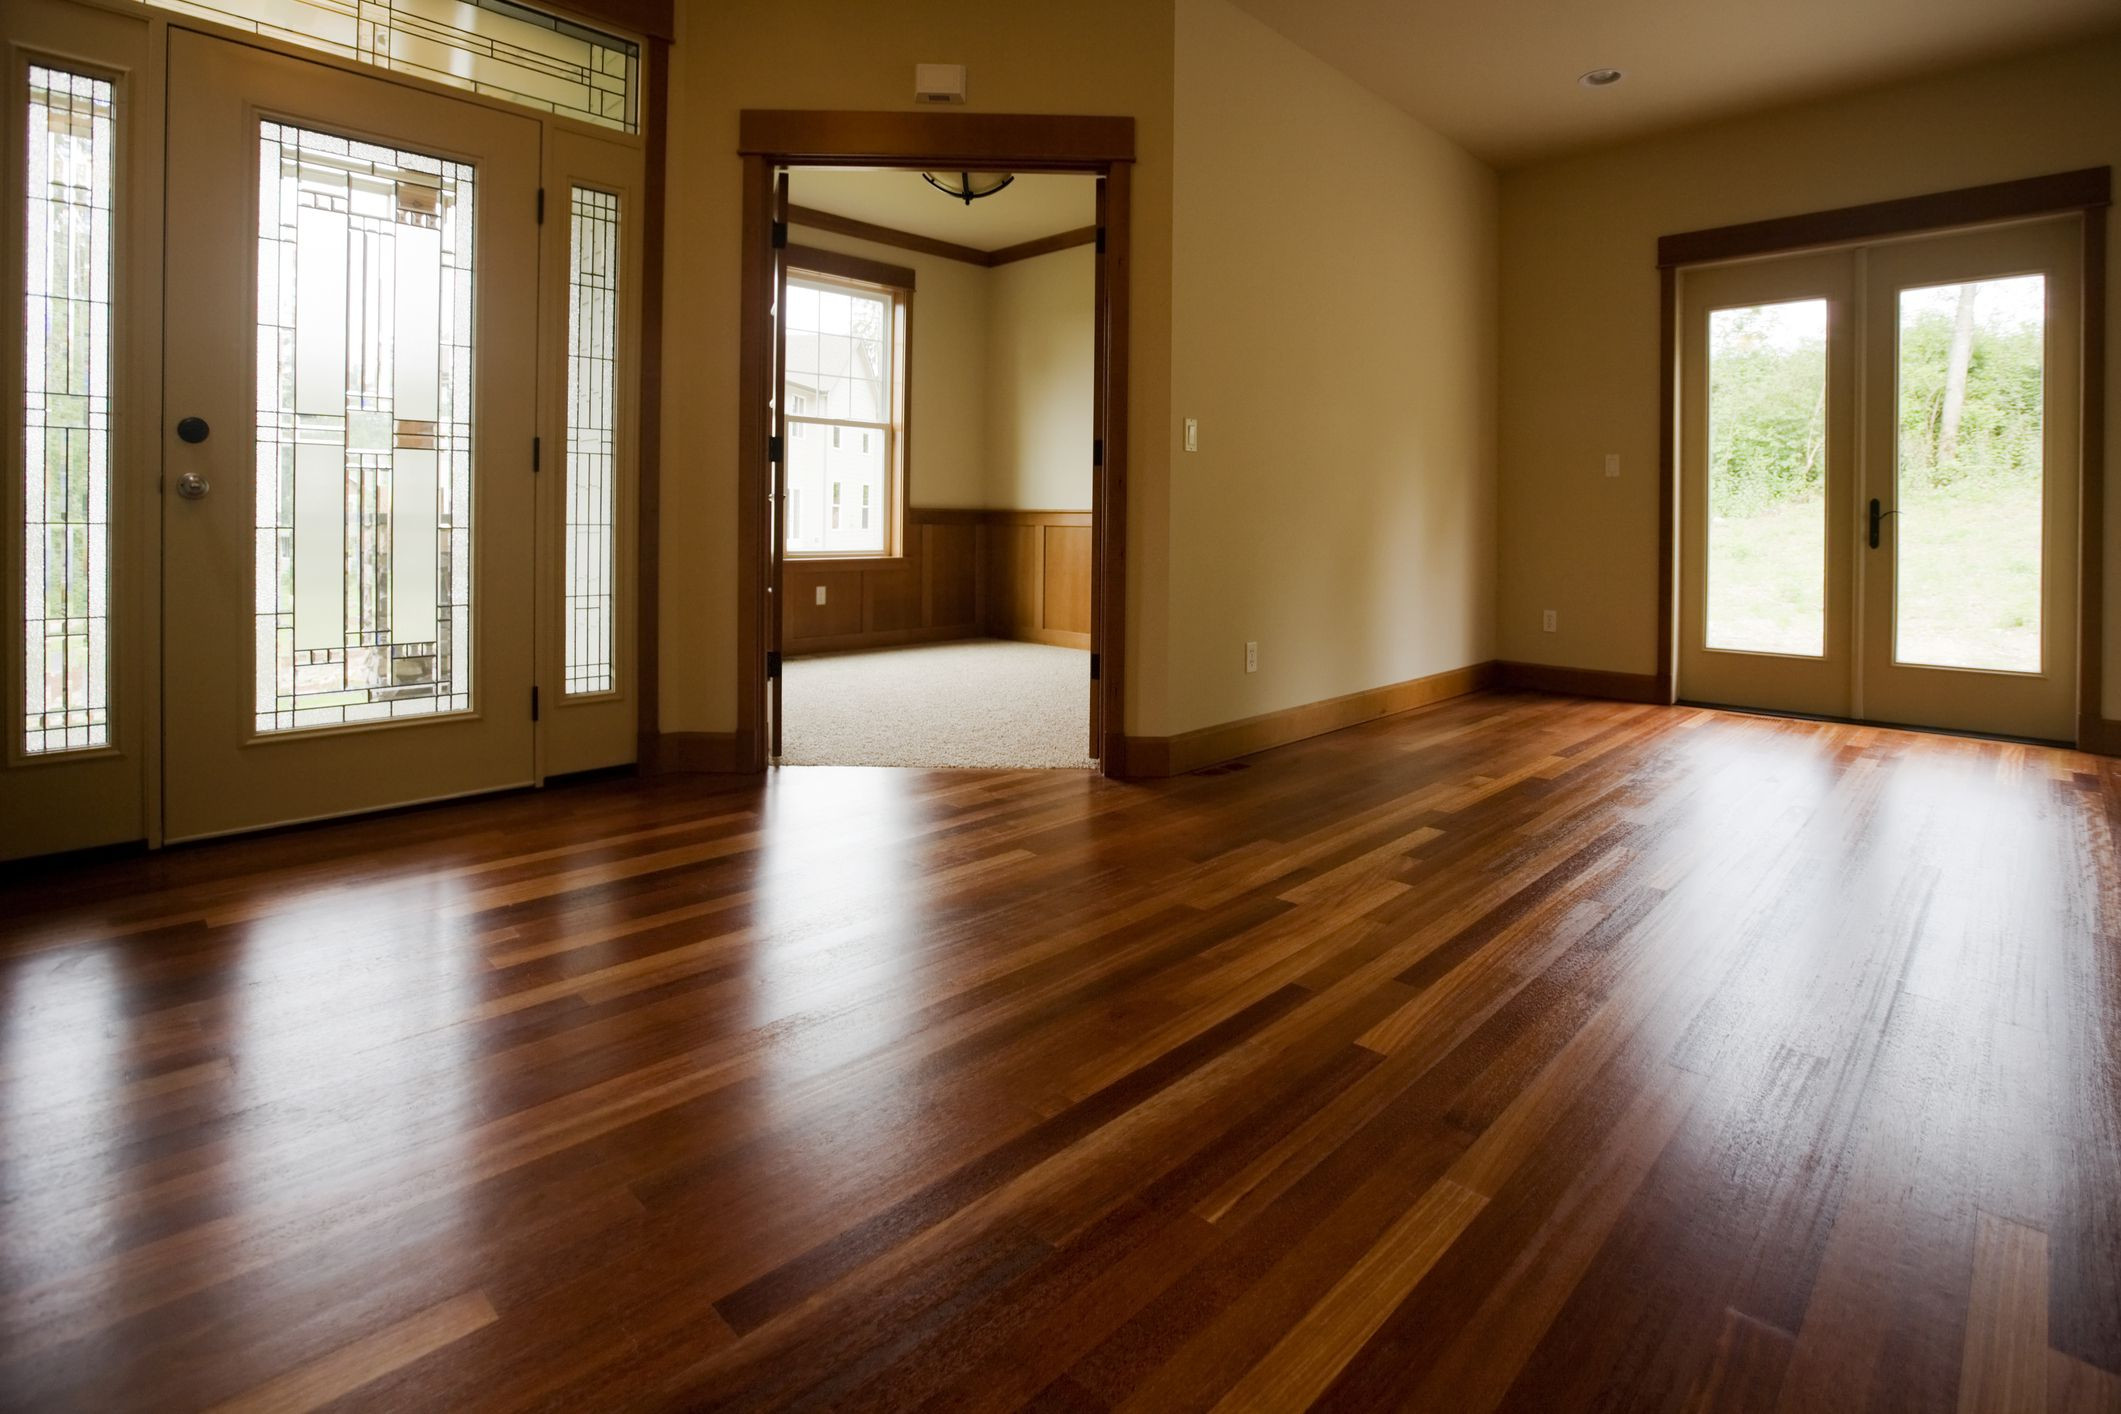 45 degree angle hardwood floor of types of hardwood flooring buyers guide throughout gettyimages 157332889 5886d8383df78c2ccd65d4e1